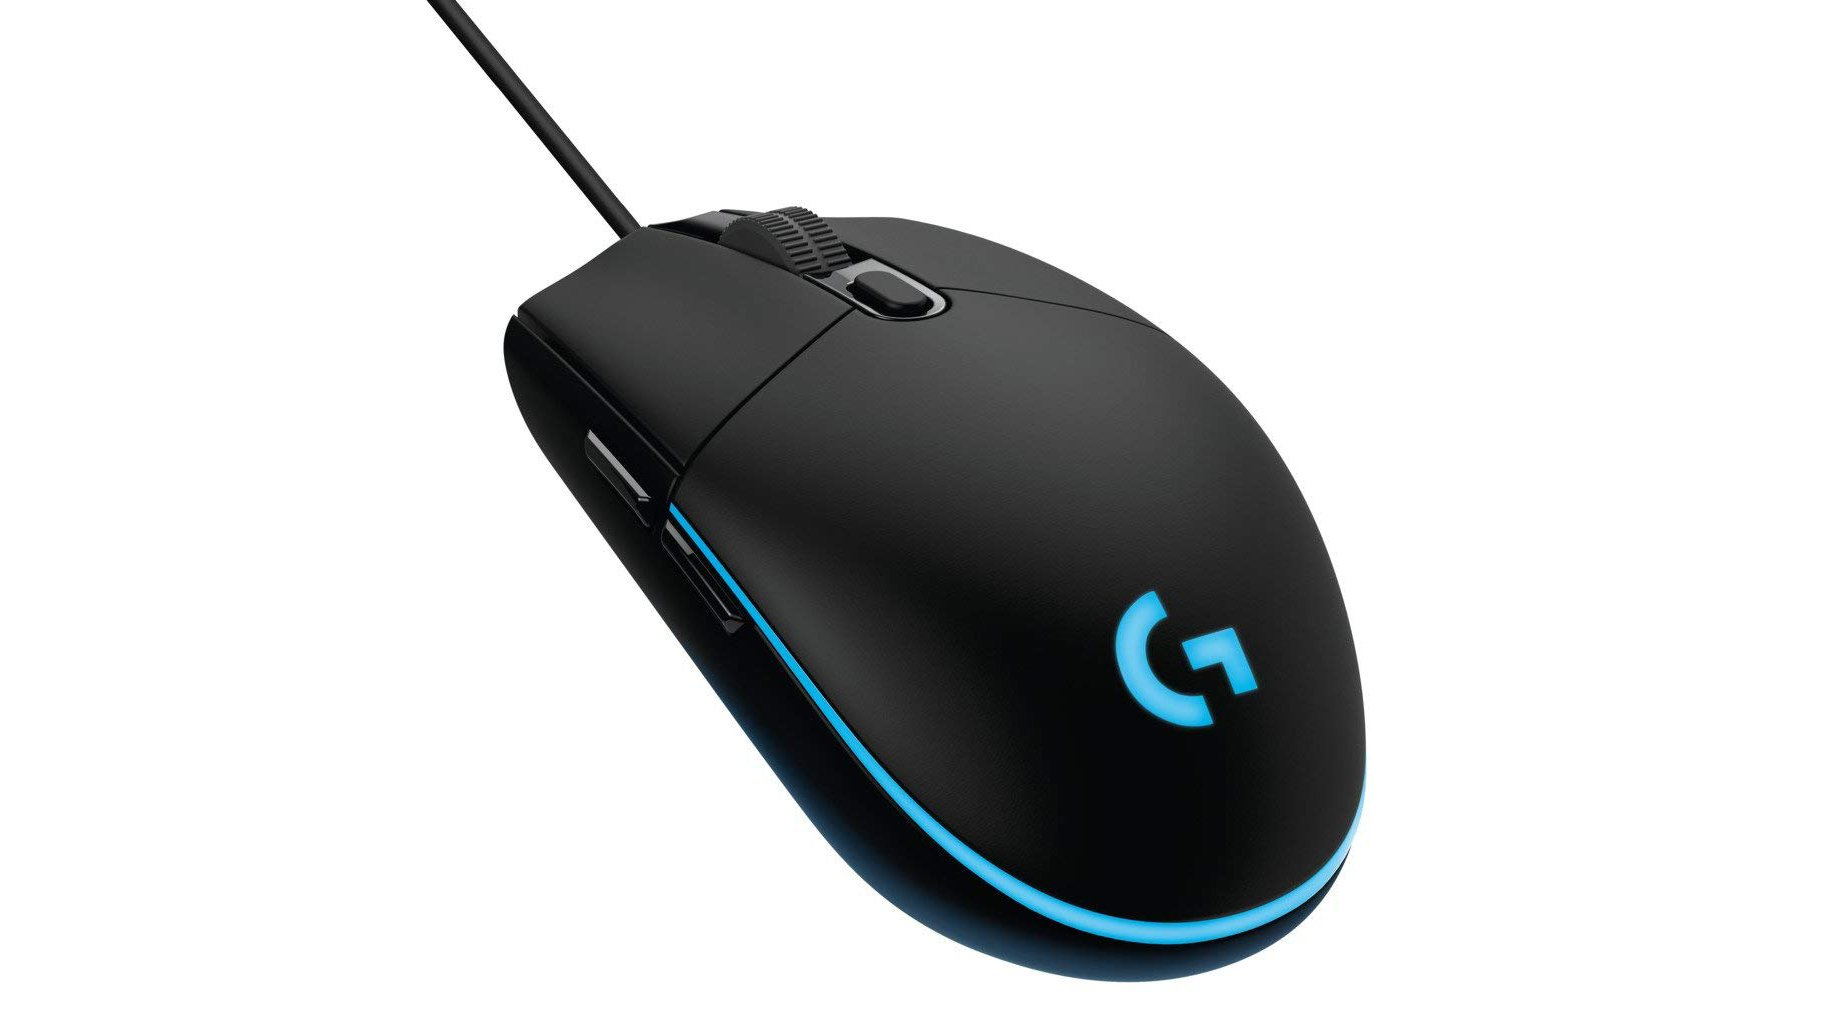 ff561aaf9aa If you're on a budget, the Logitech G203 is a great pick. The mouse costs  just £25 and yet, offers all the great attributes you'd want from a gaming  mouse.